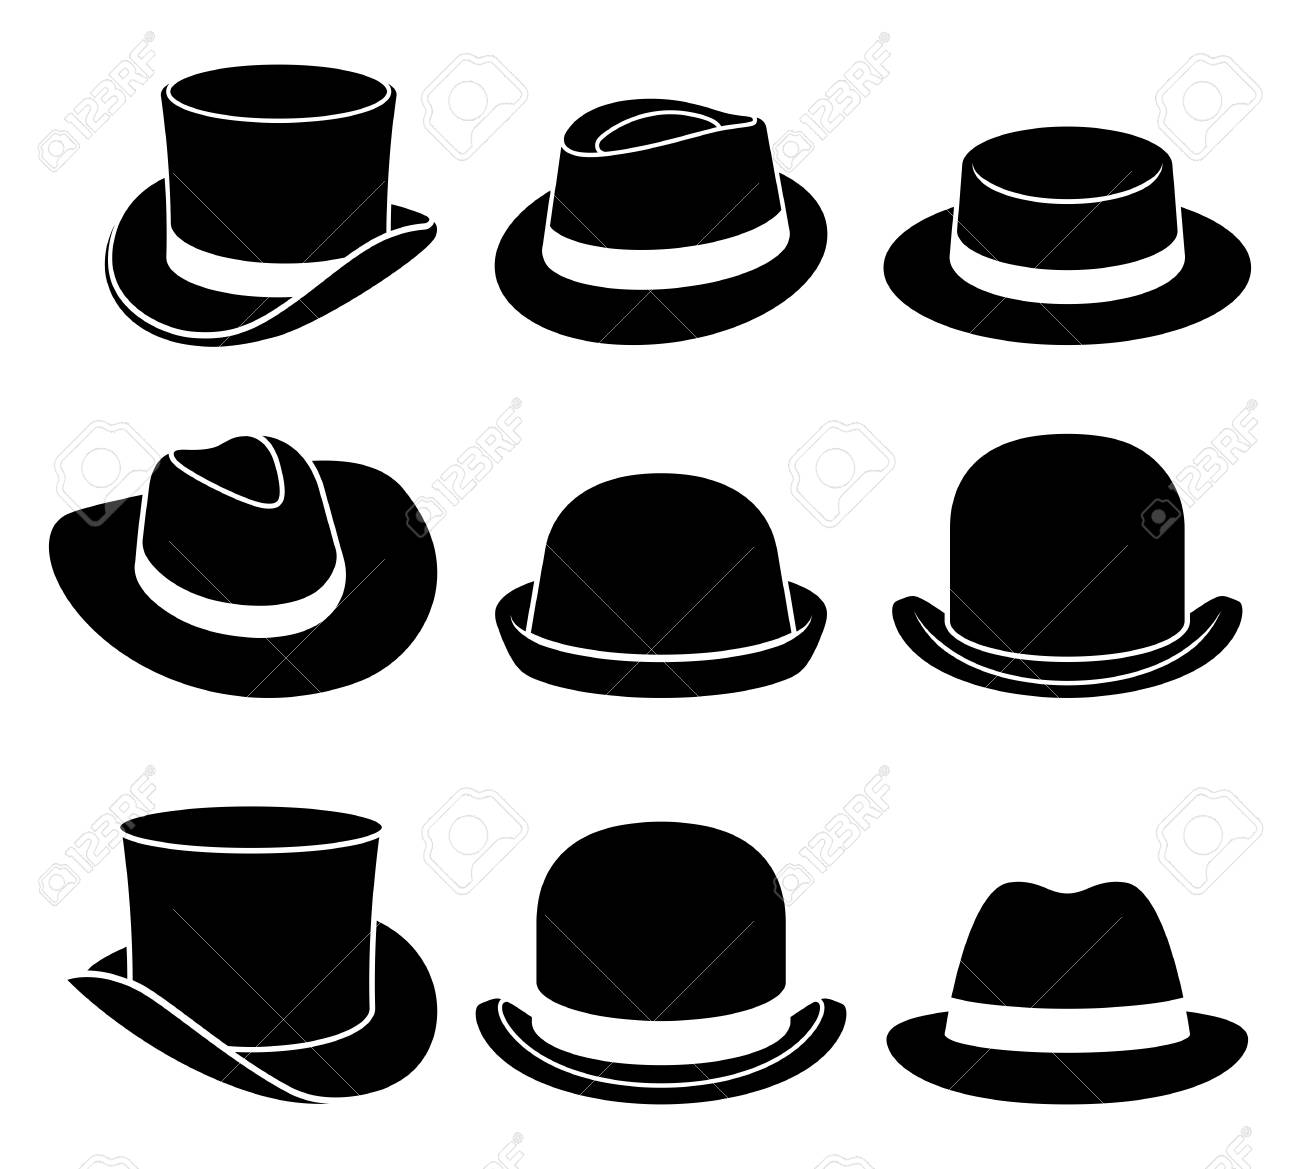 4cb966d8 Vintage Hats Icons. Vector Illustration. Royalty Free Cliparts ...